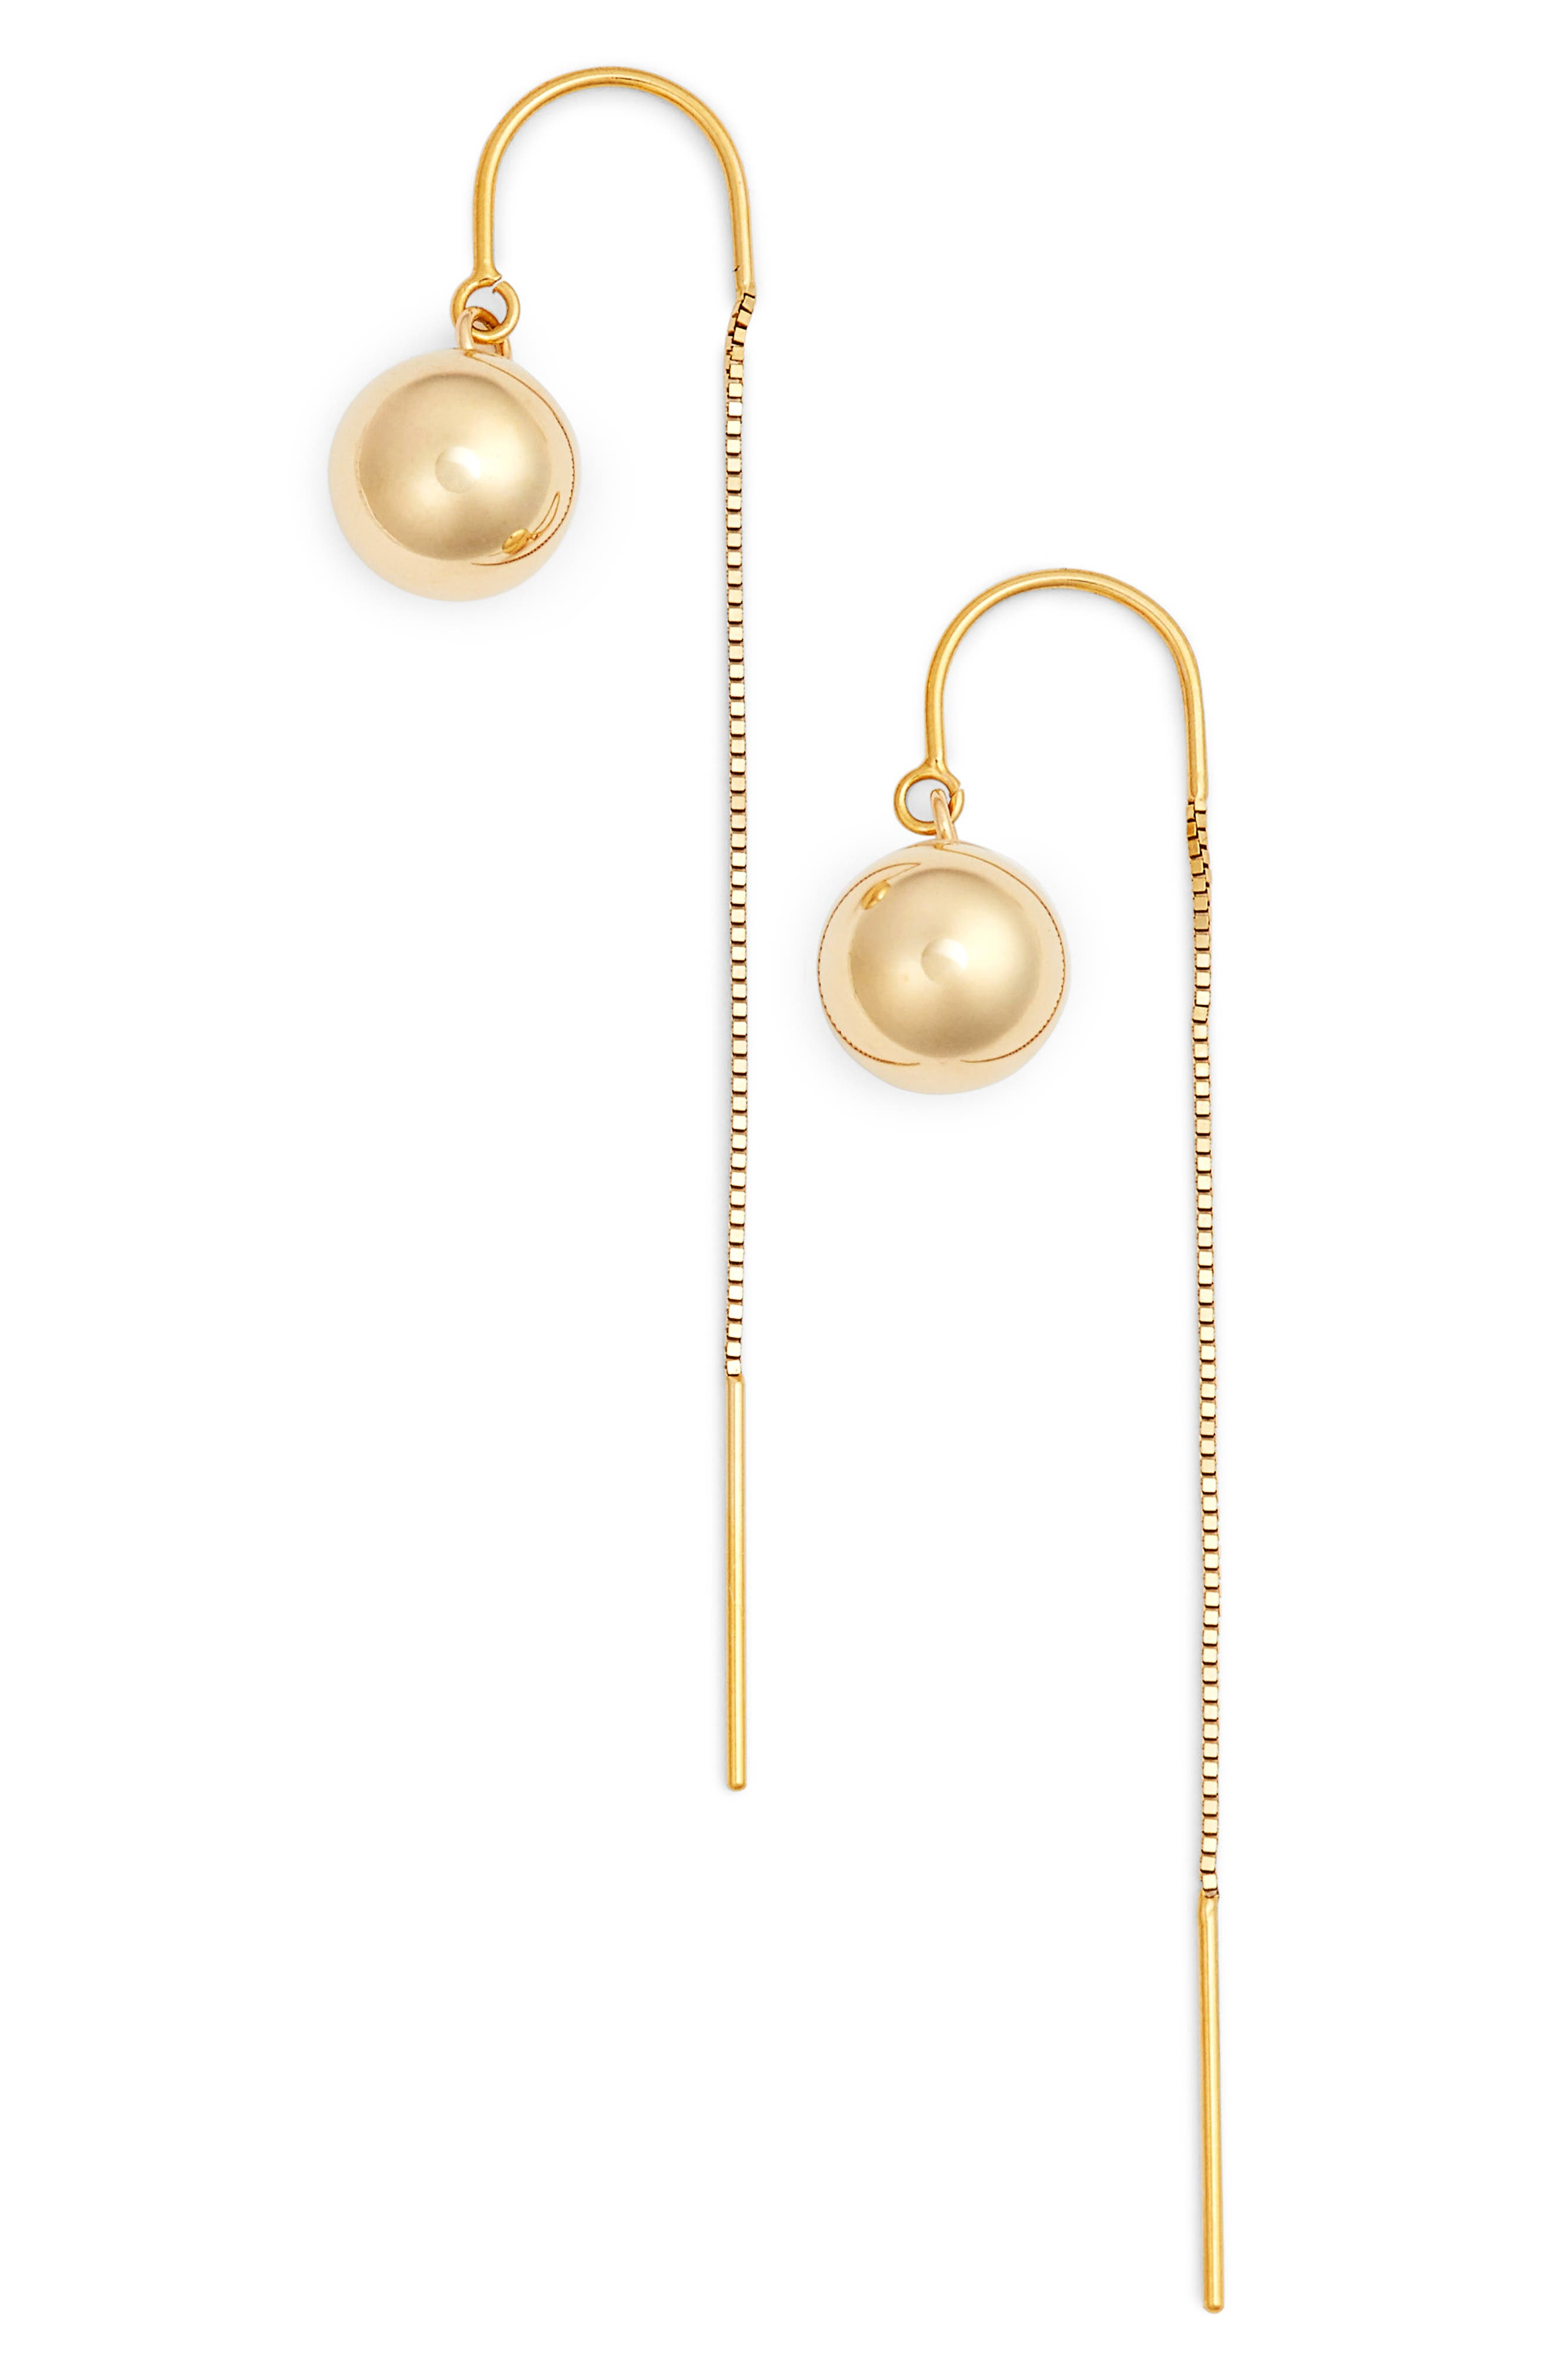 Gold Ball Threader Earrings,                         Main,                         color, Yellow Gold